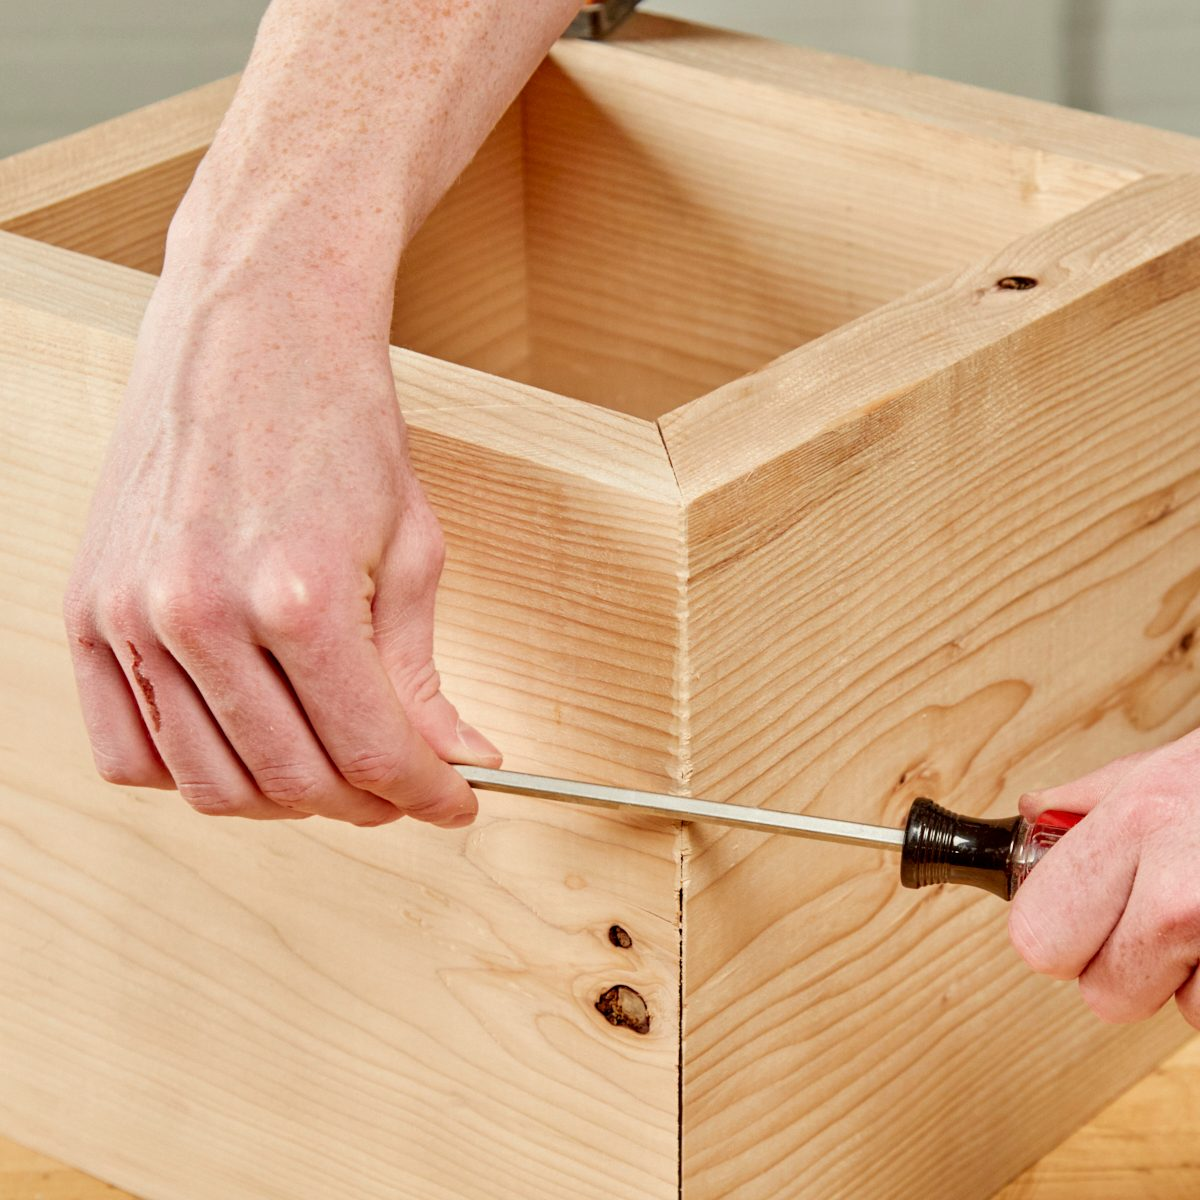 Screwdriver Miter Closer Handy Hint